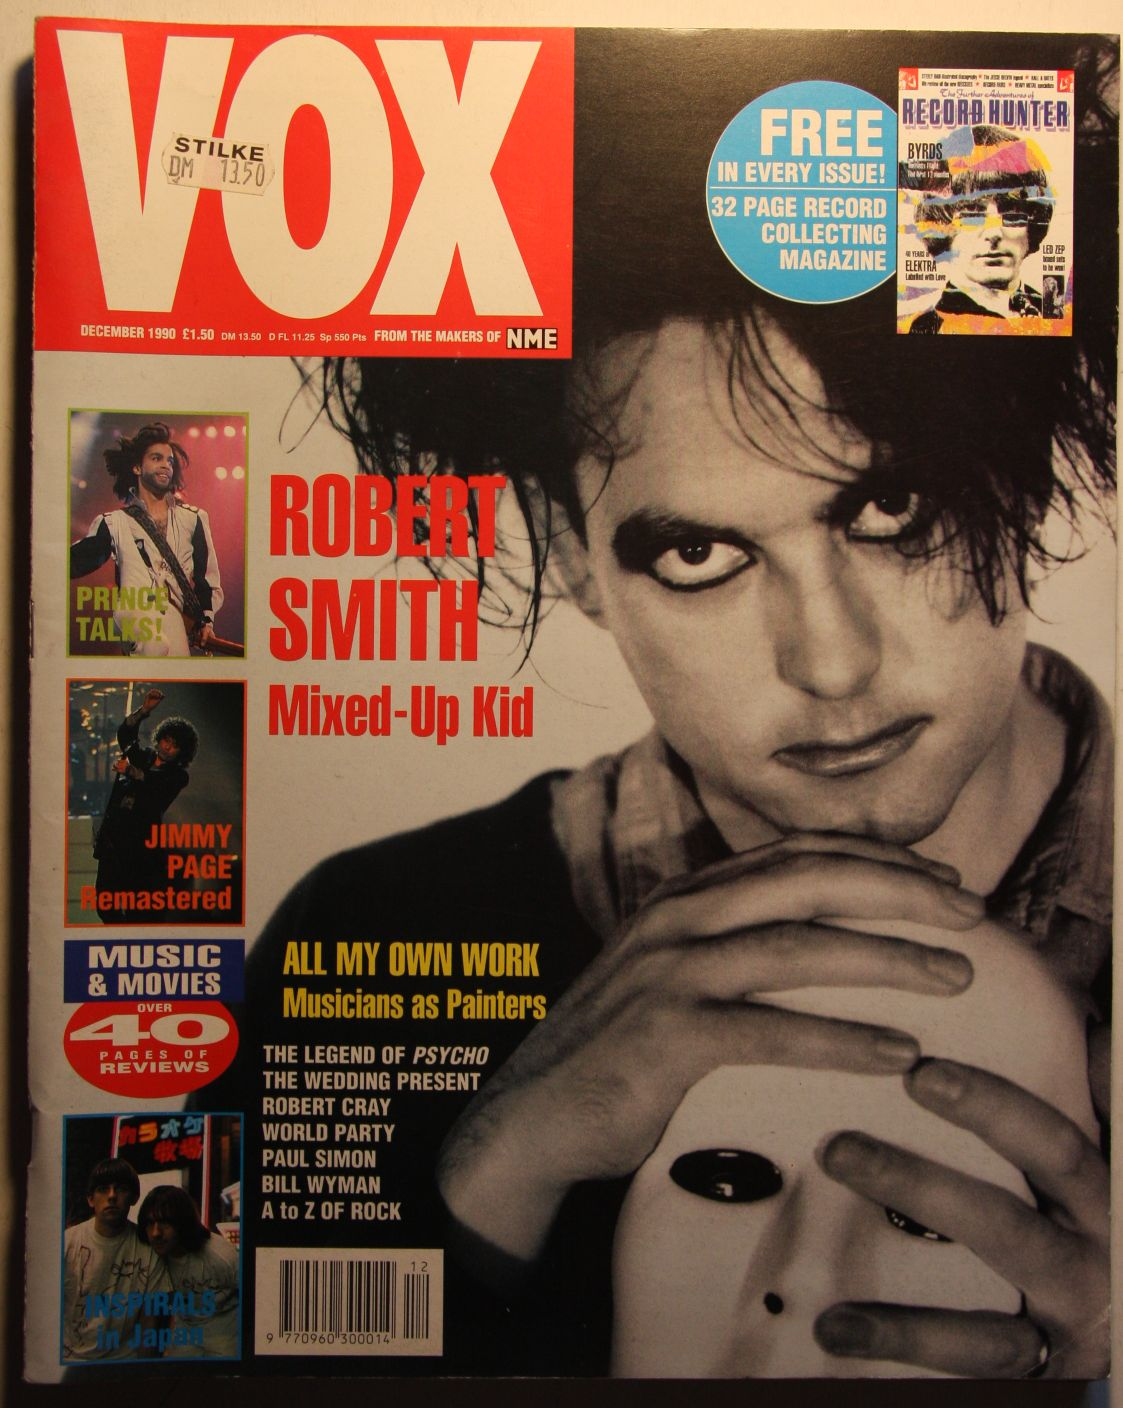 Uk Vox Magazine #3 Dec 90